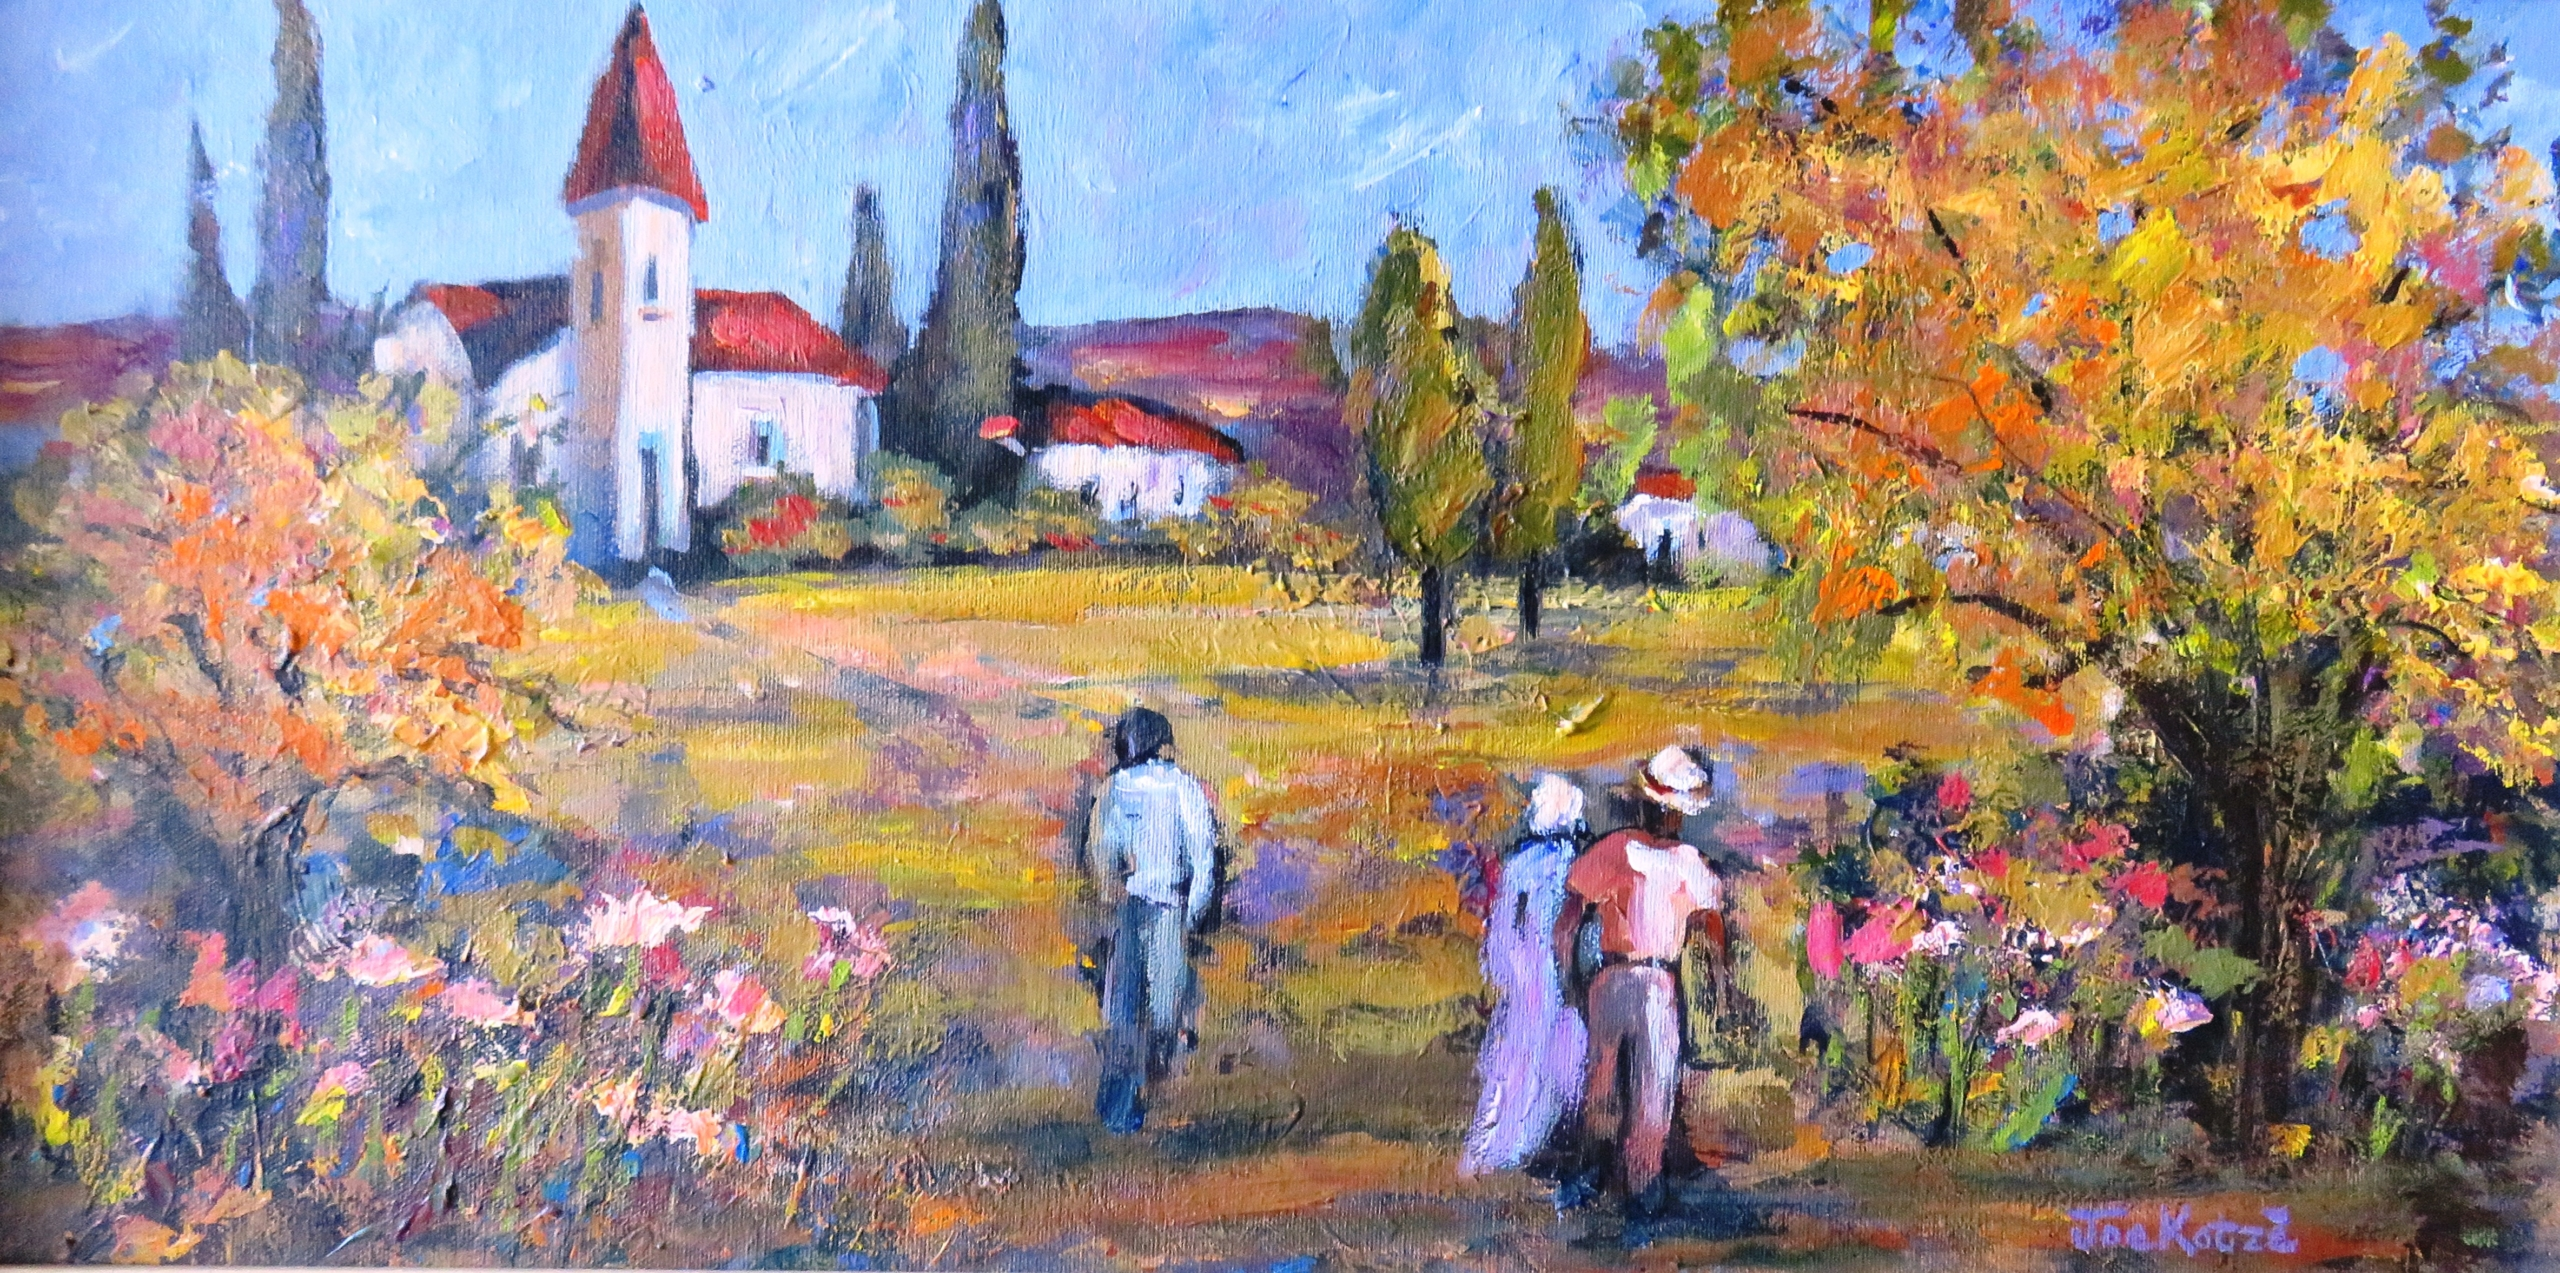 joe kotze, south african art,paintings for sale, oil painting, buy art online, crouse art gallery